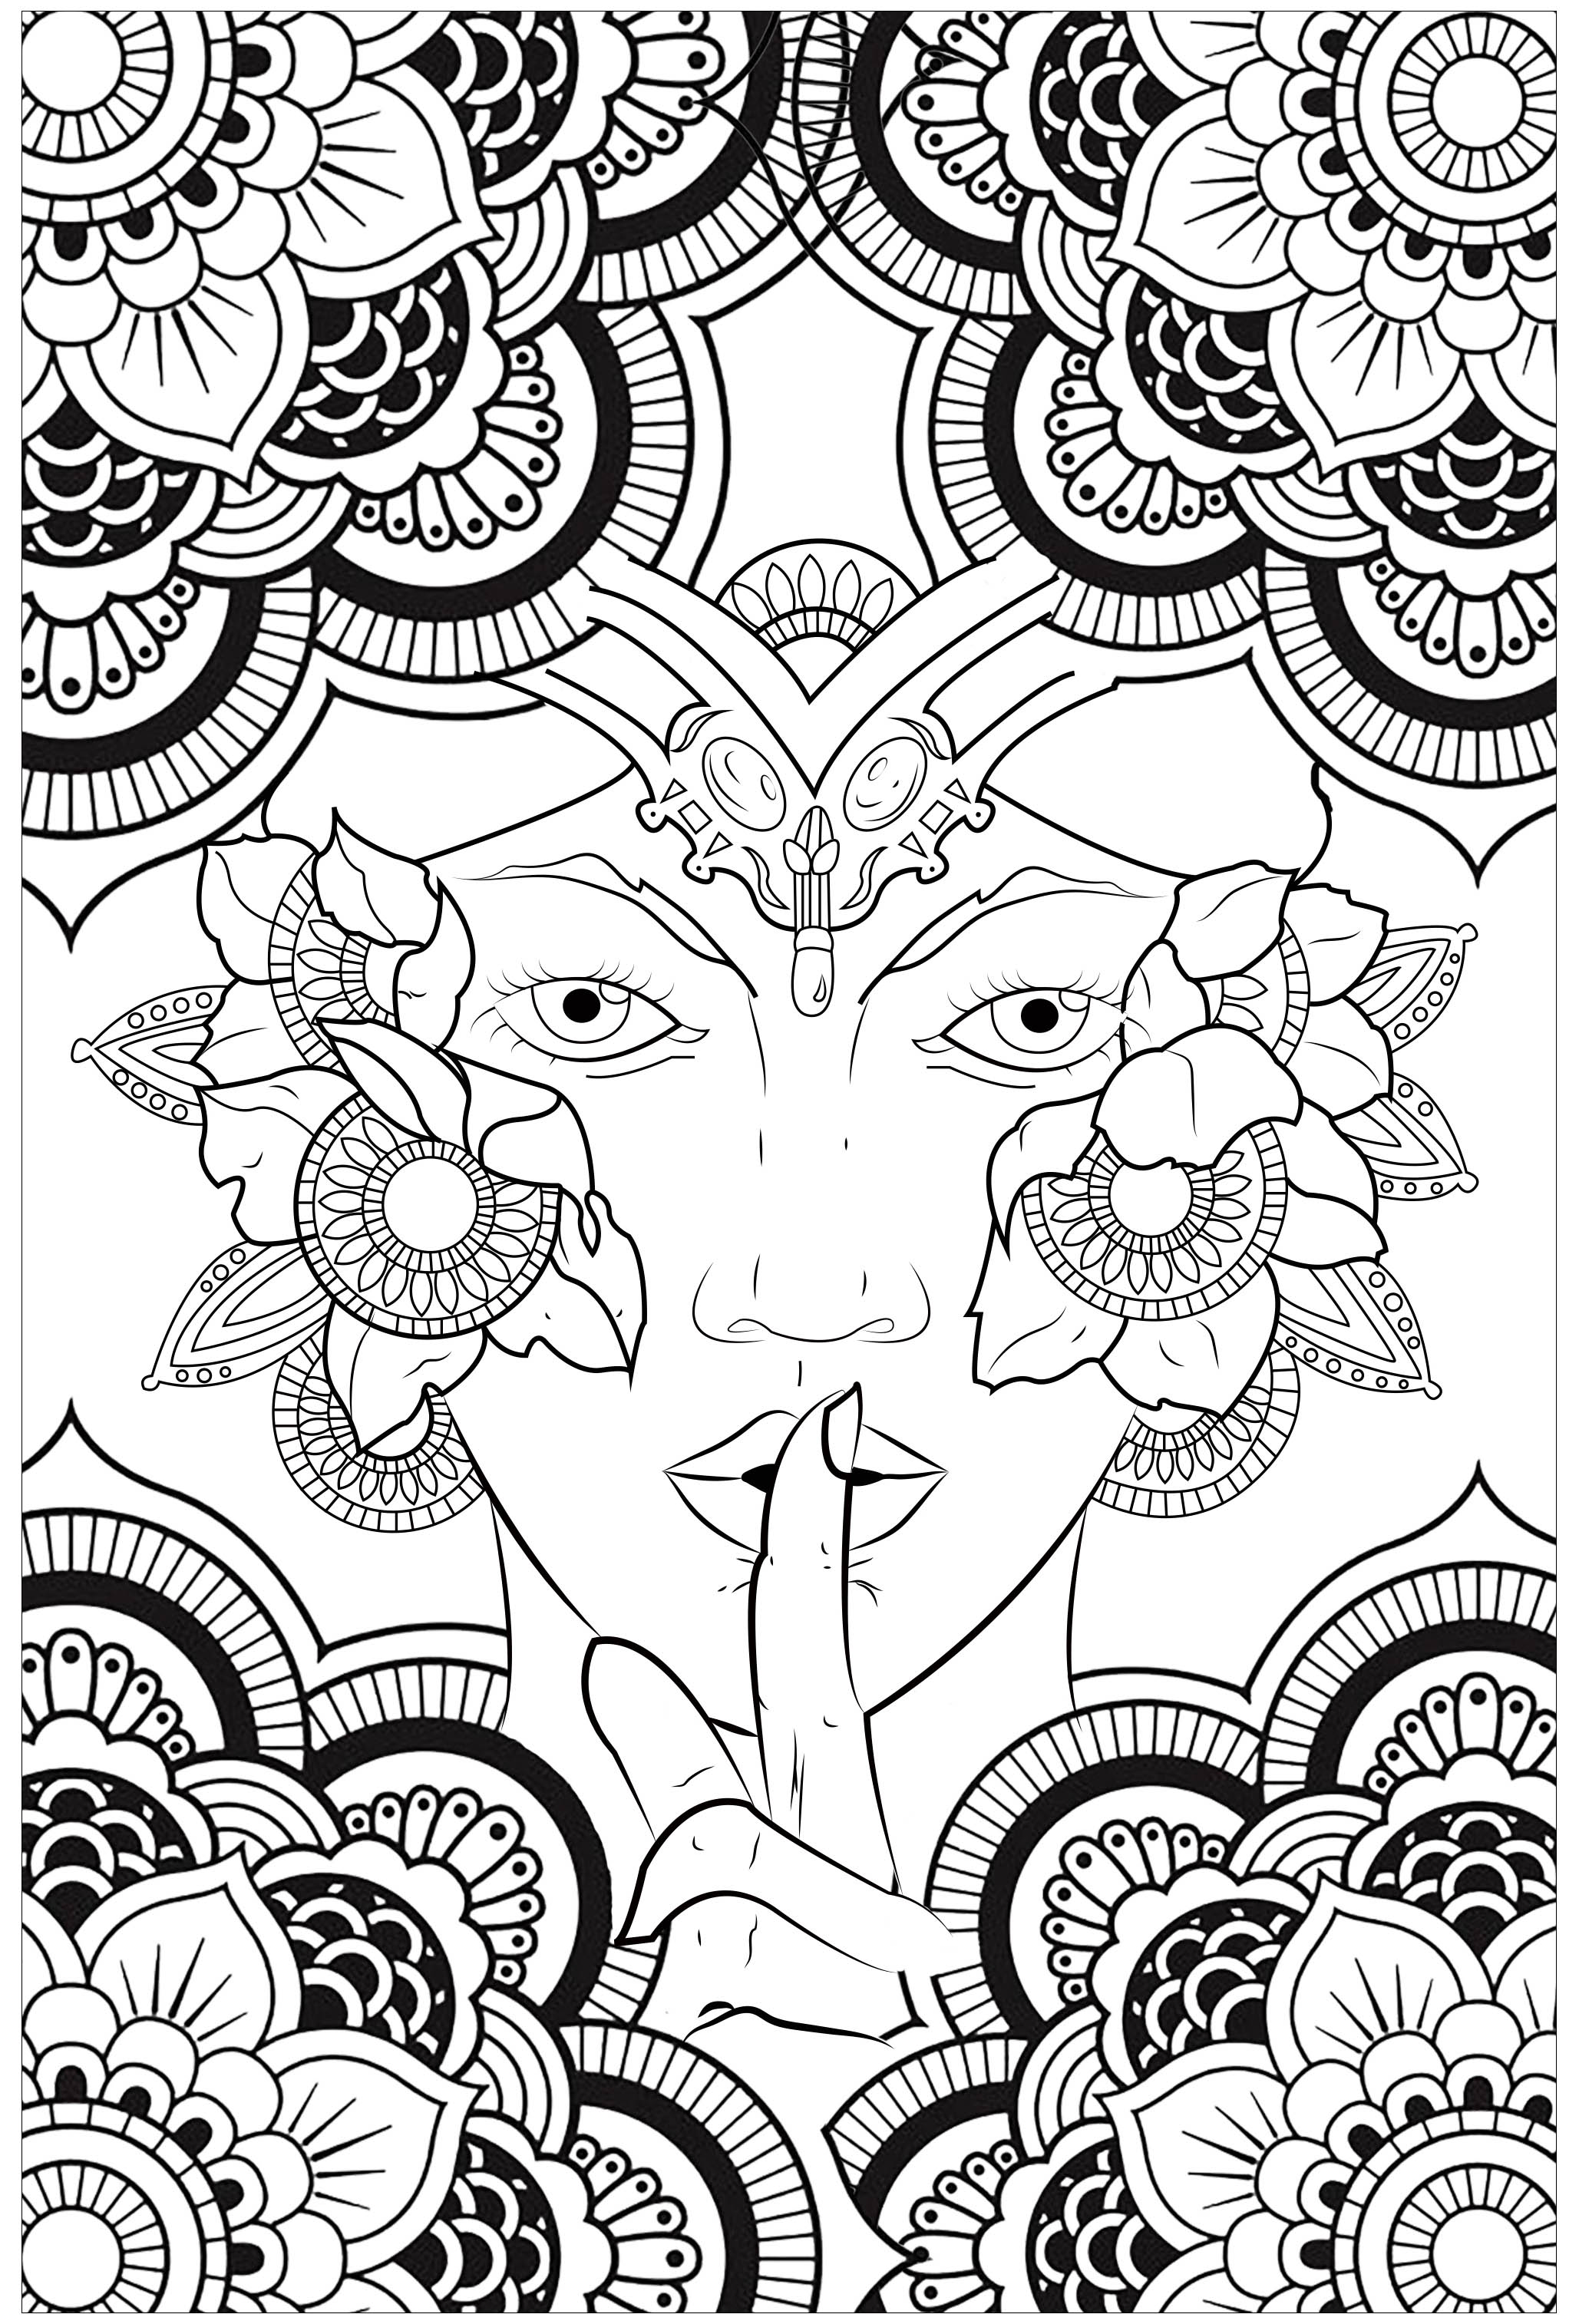 Silent Woman, with mandalas